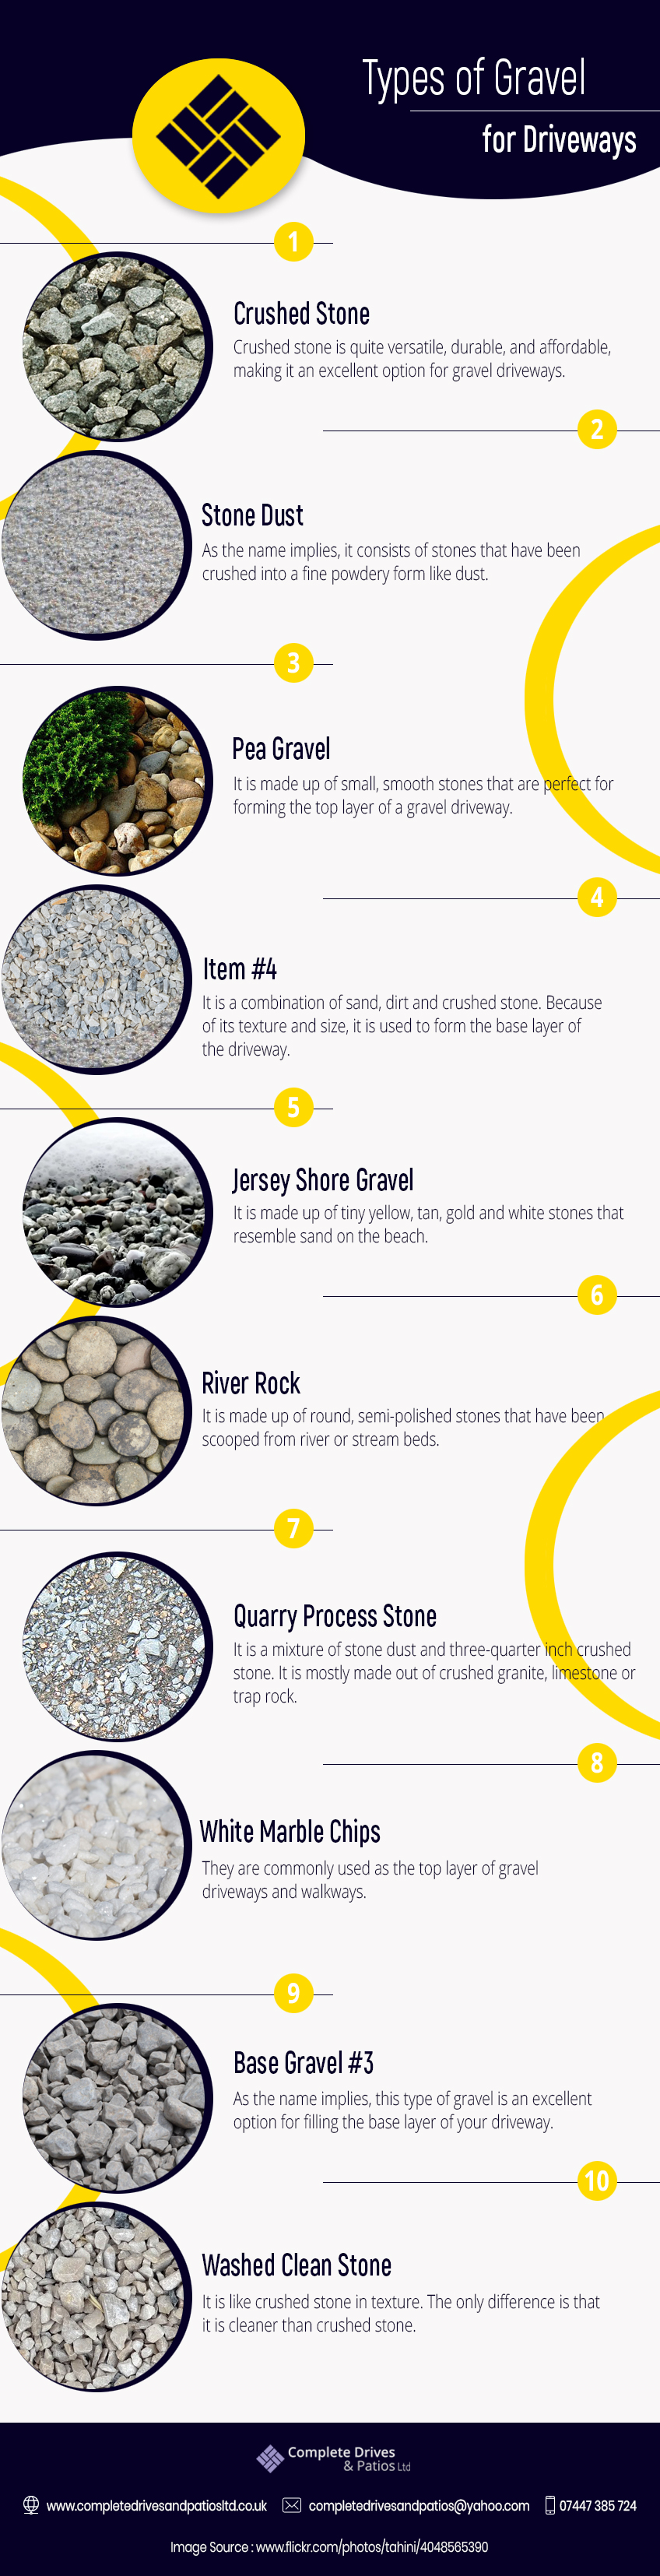 types of gravel